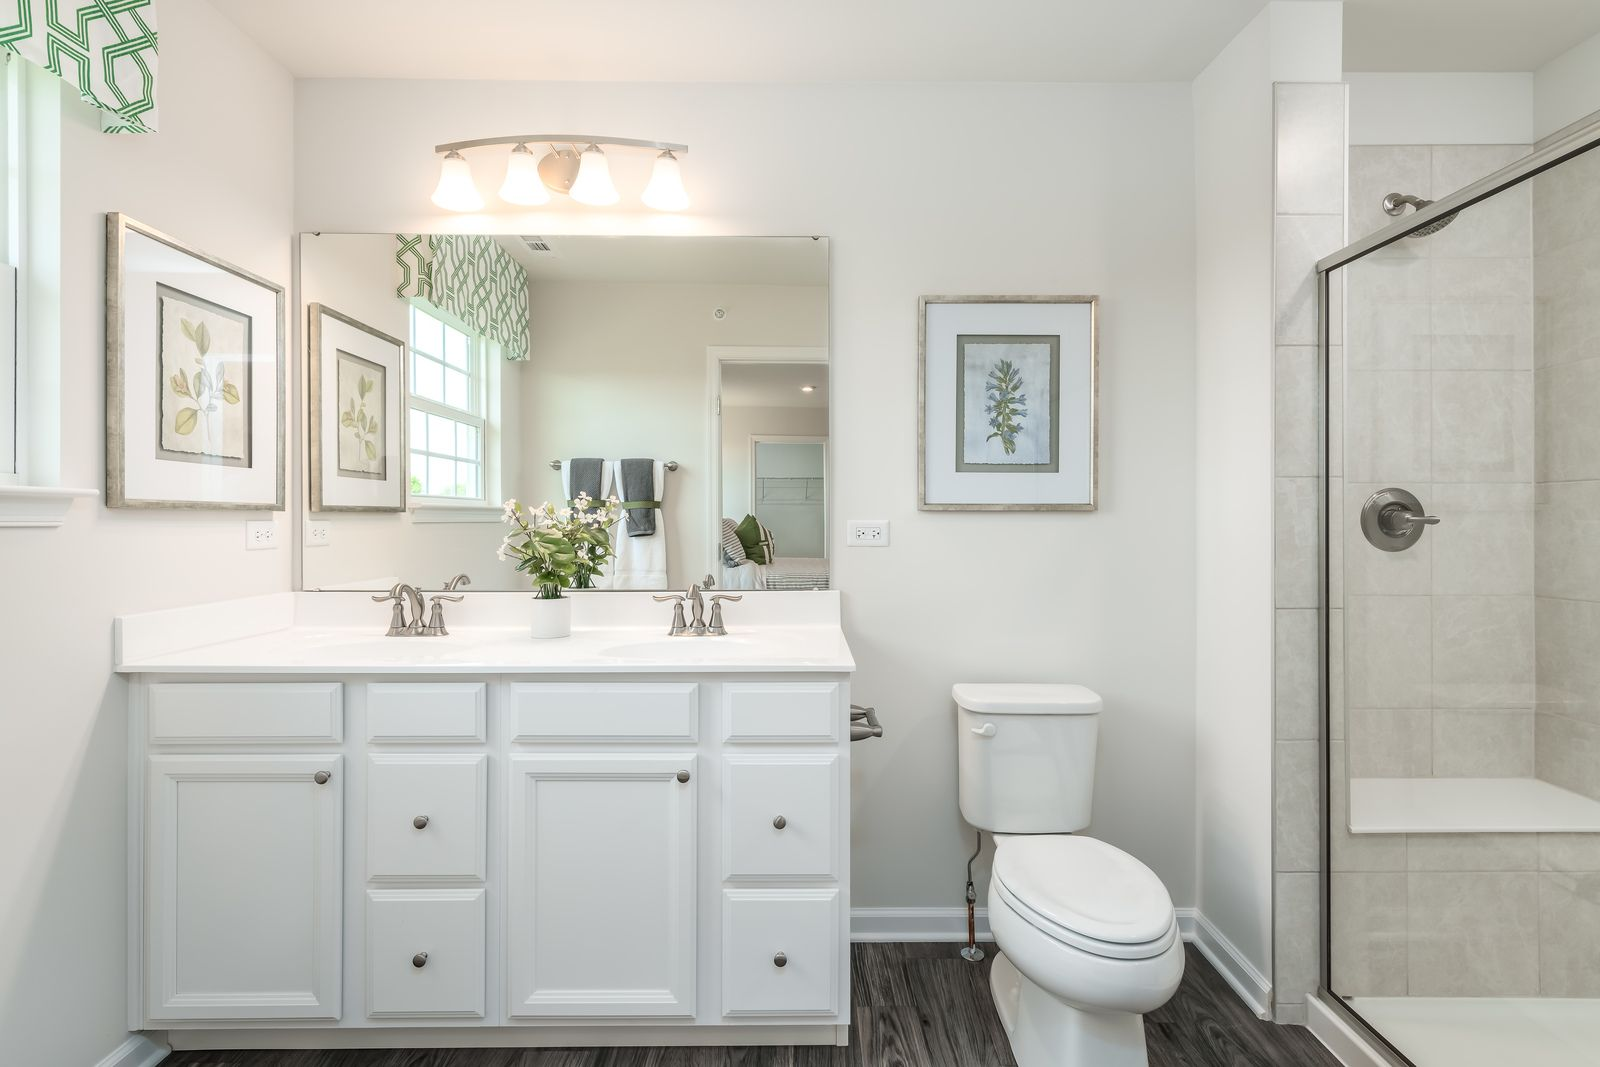 Bathroom featured in the Rosecliff By Ryan Homes in Chicago, IL